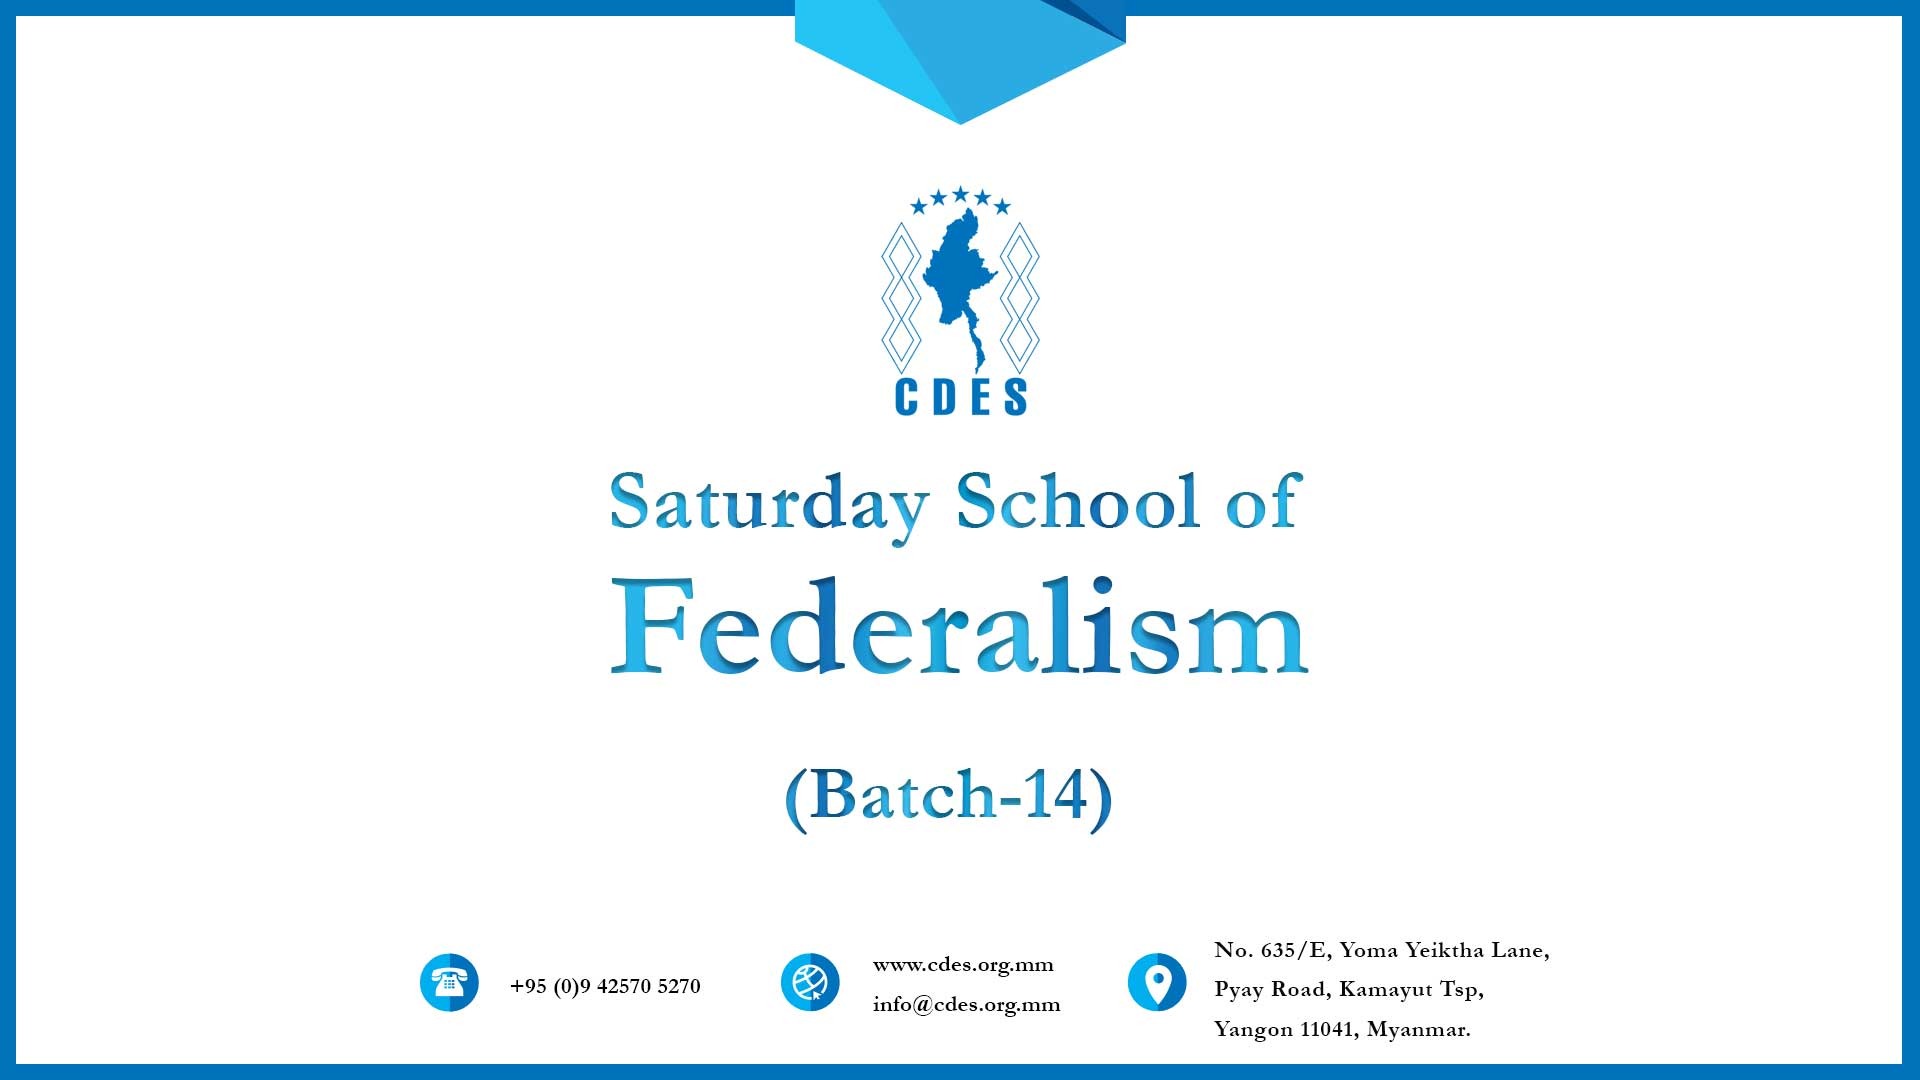 Saturday School of Federalism (Batch-14)